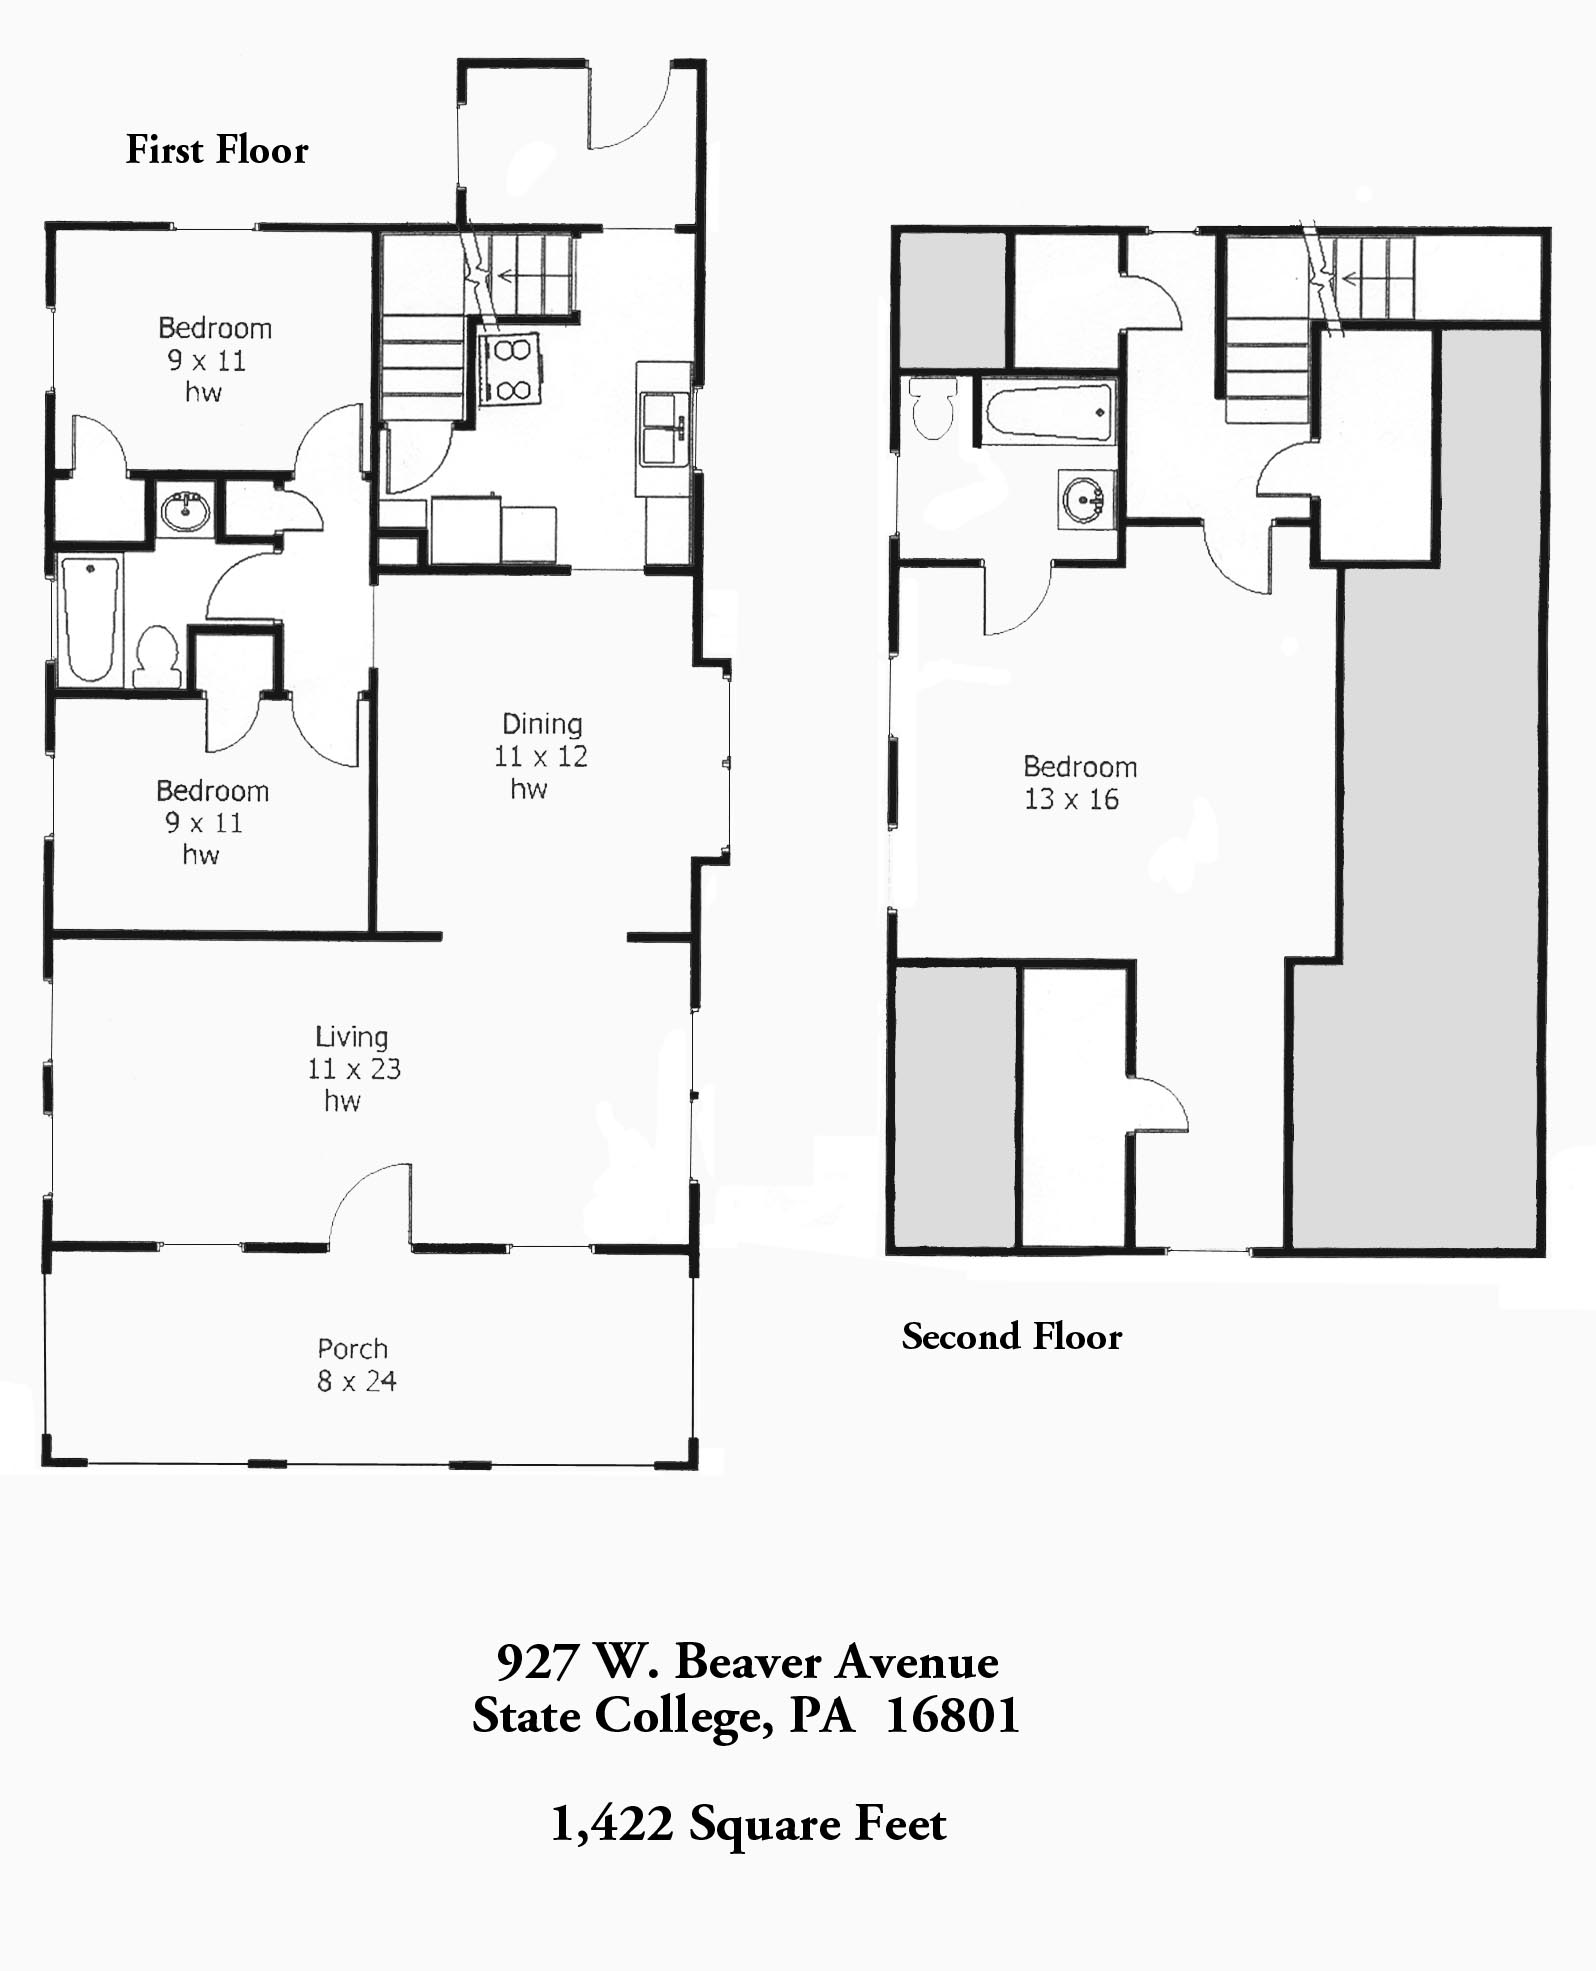 Floor plan of the 3-bedroom home for rent at 927 West Beaver Avenue, State College PA 16801